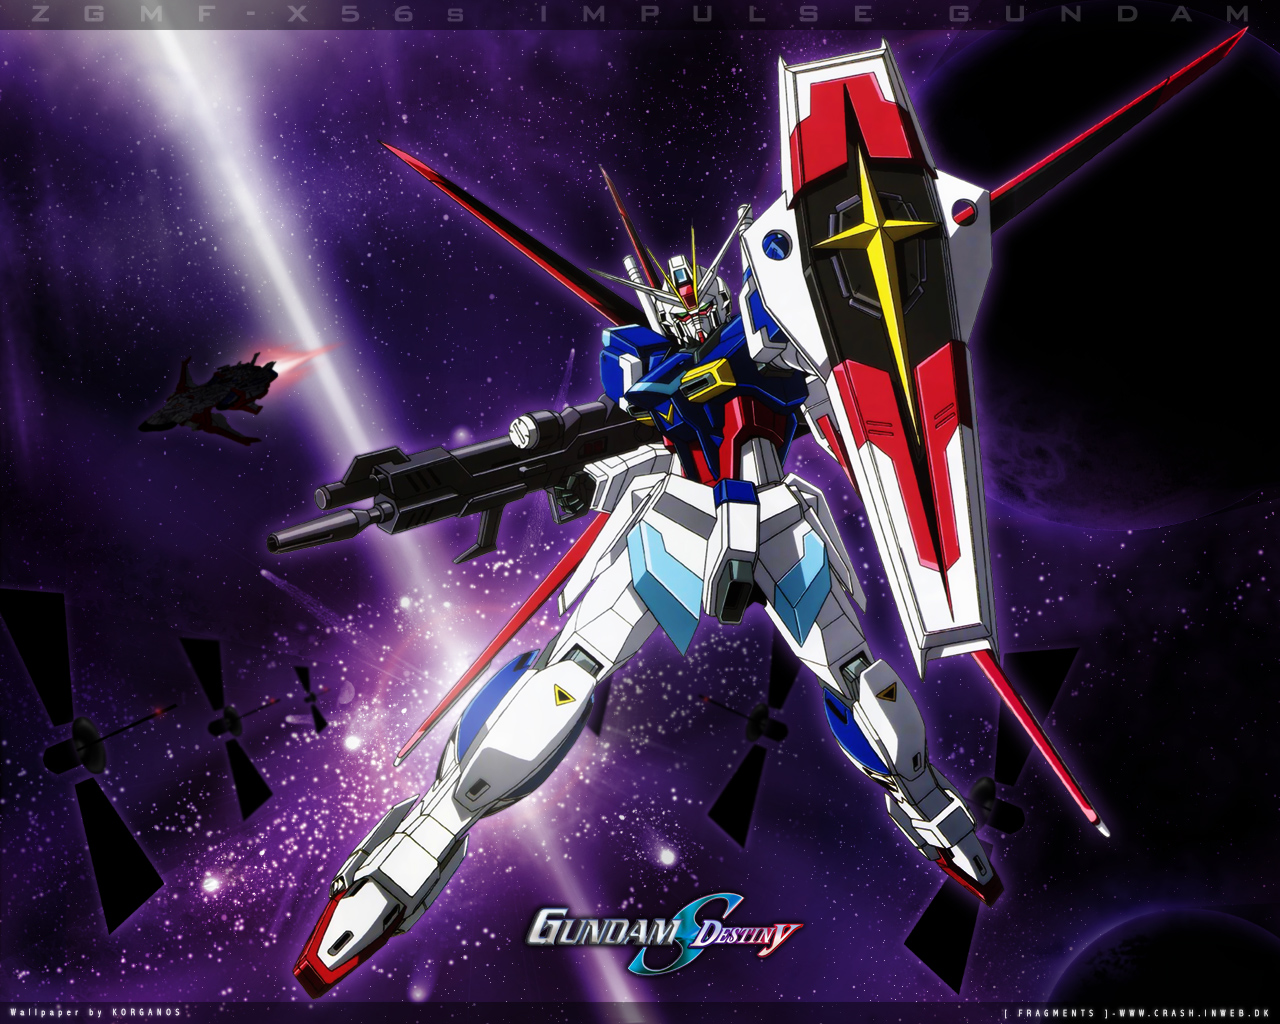 73 Gundam Seed Destiny Wallpaper On Wallpapersafari